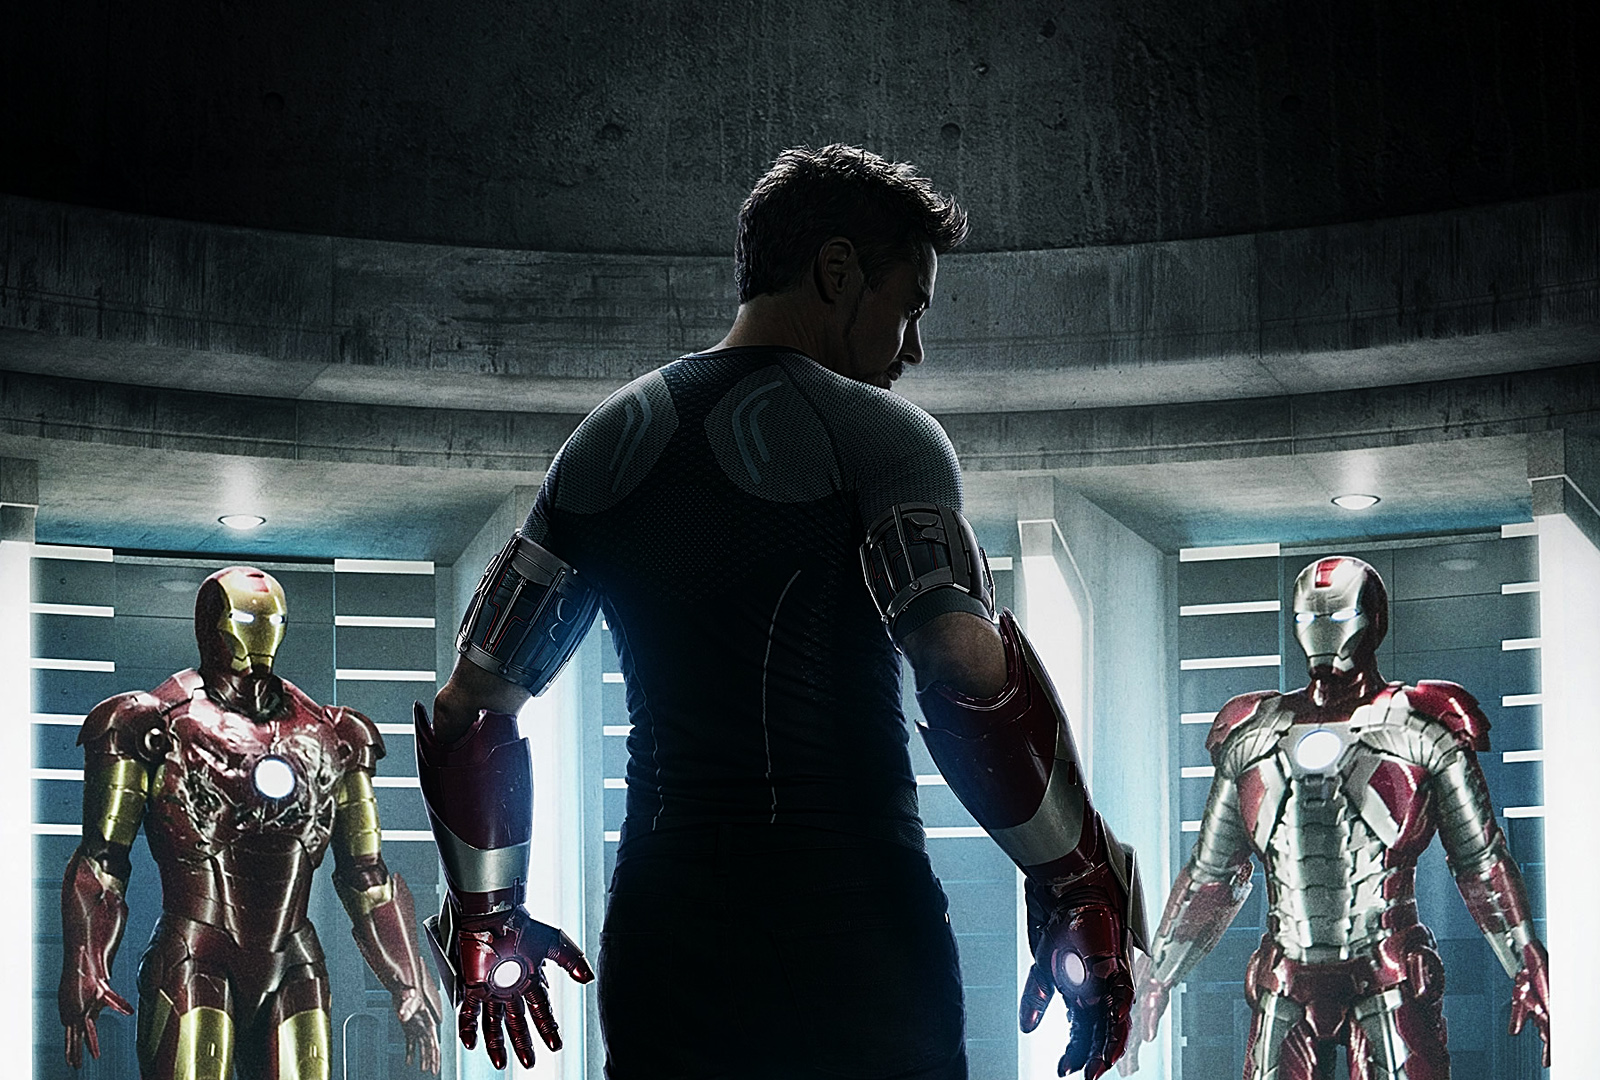 tony stark images hd - photo #20